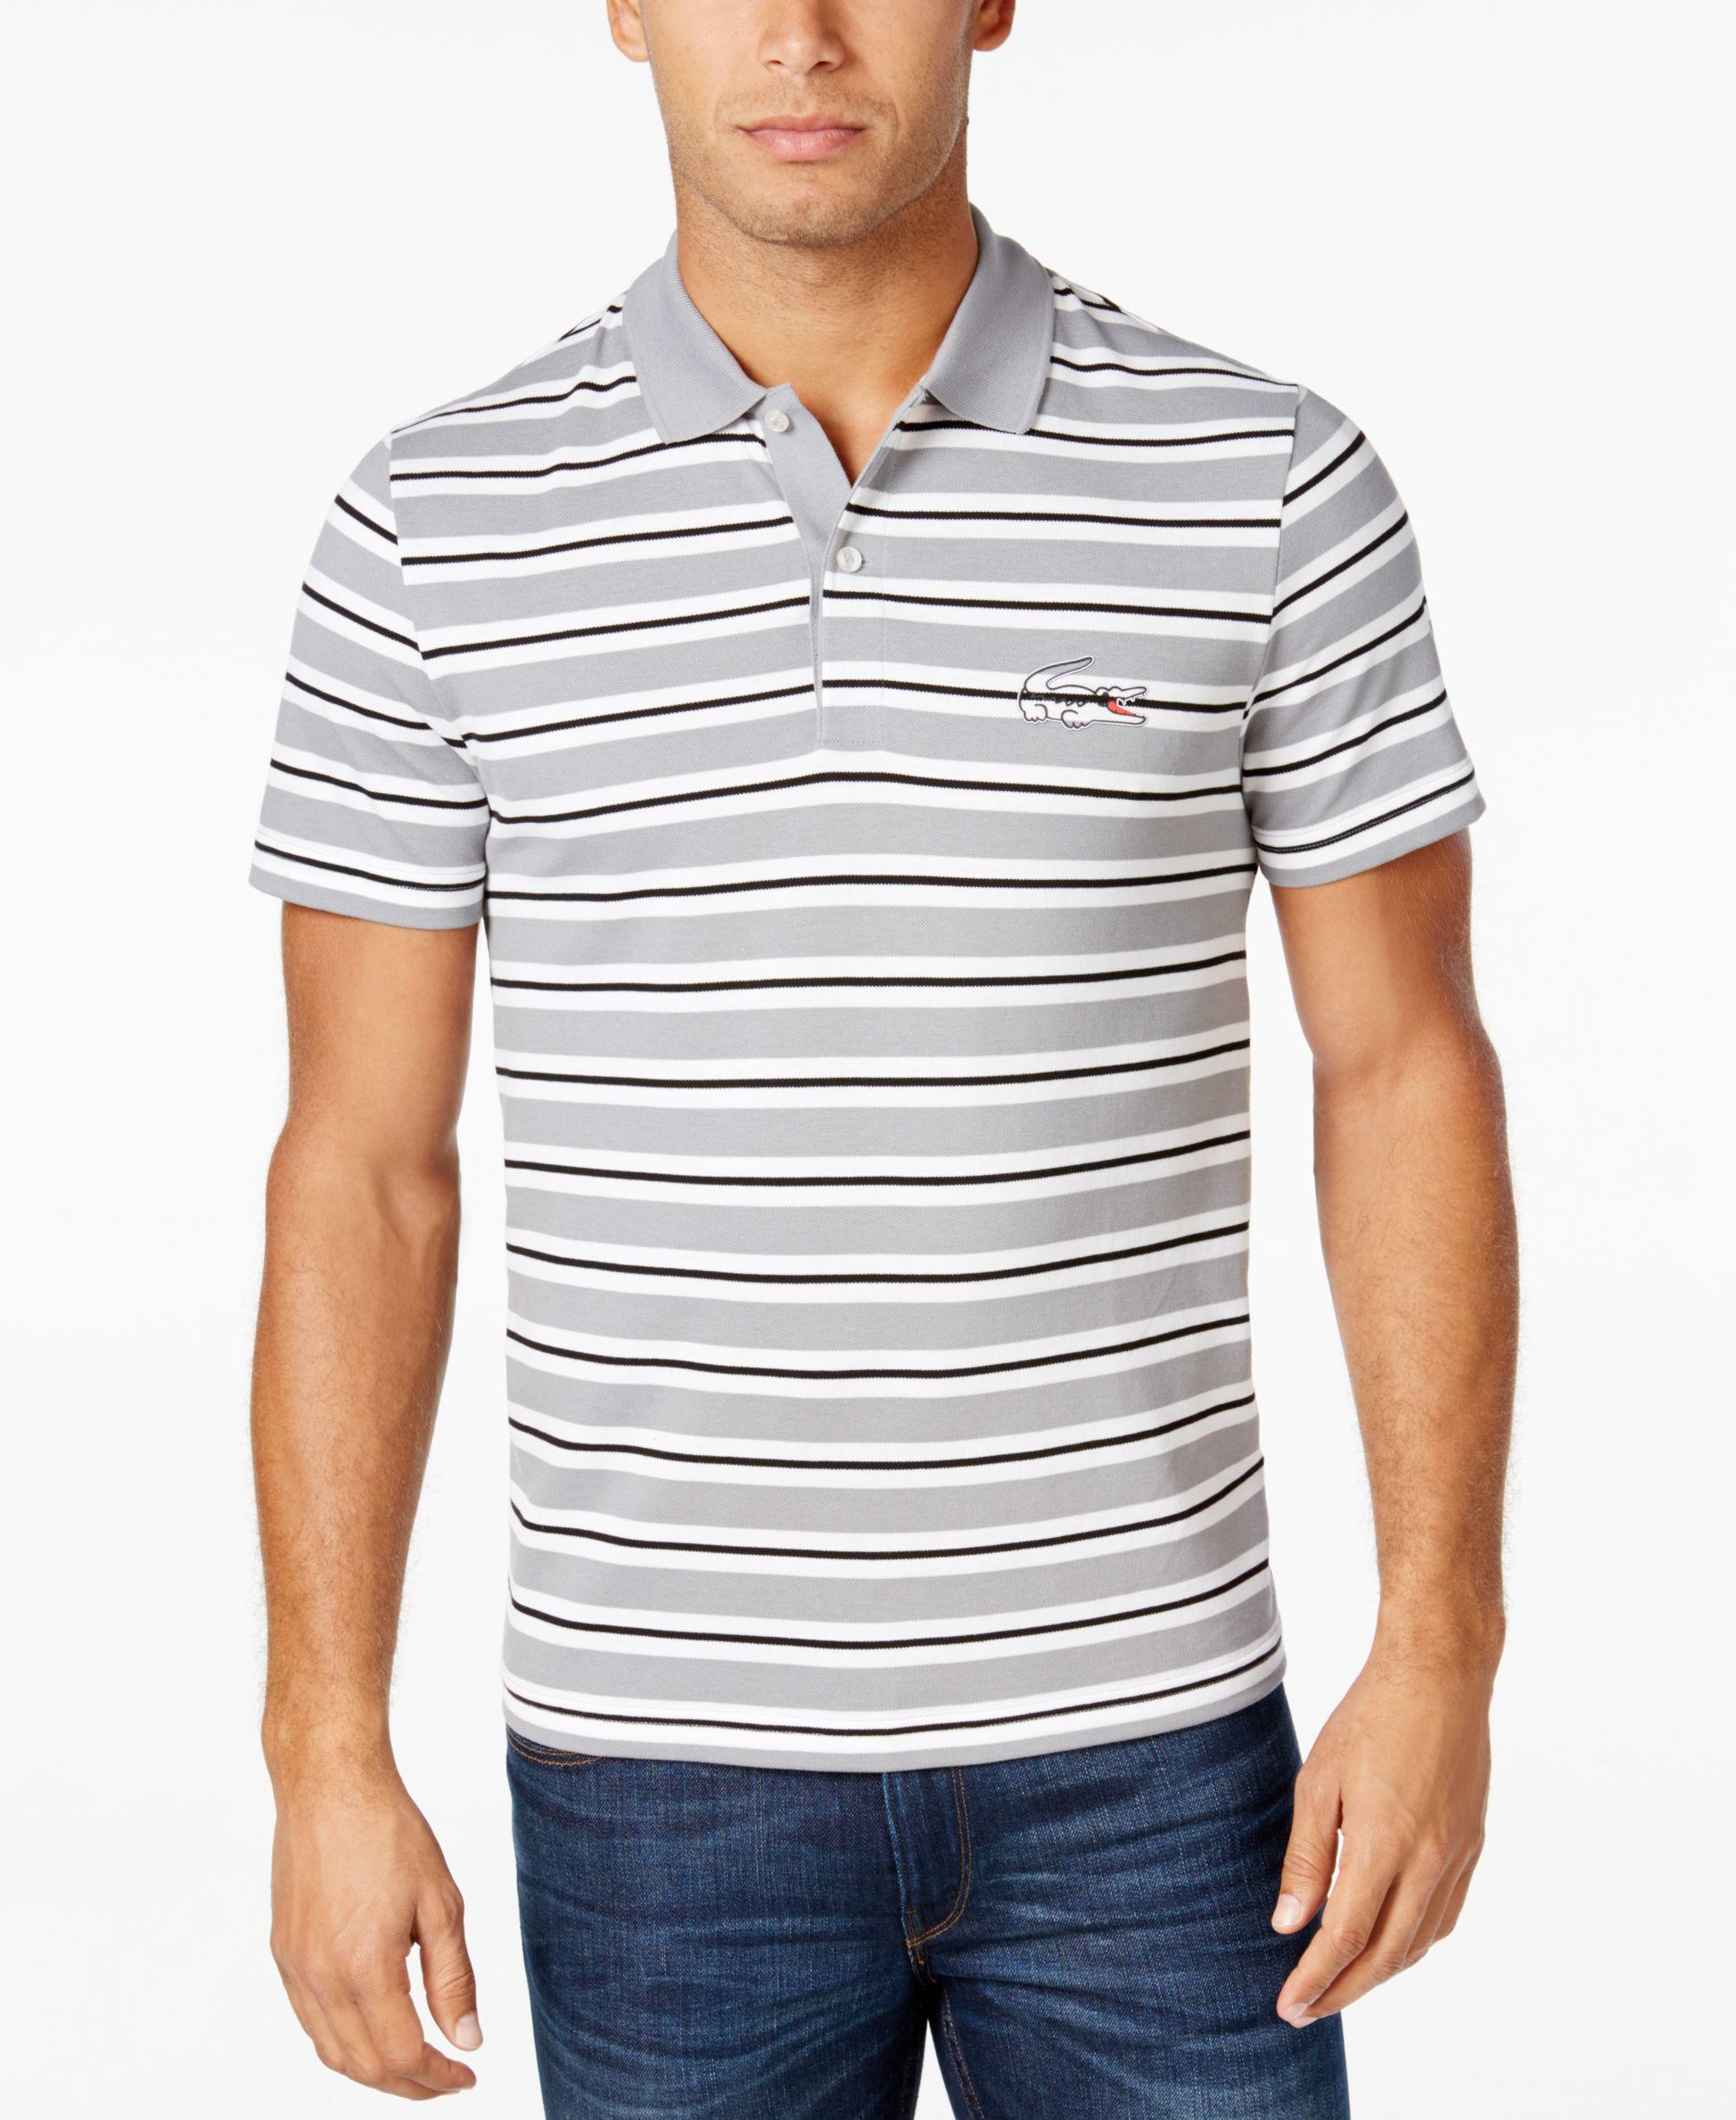 Lyst lacoste men 39 s pique striped polo in white for men for Lacoste stripe pique polo shirt